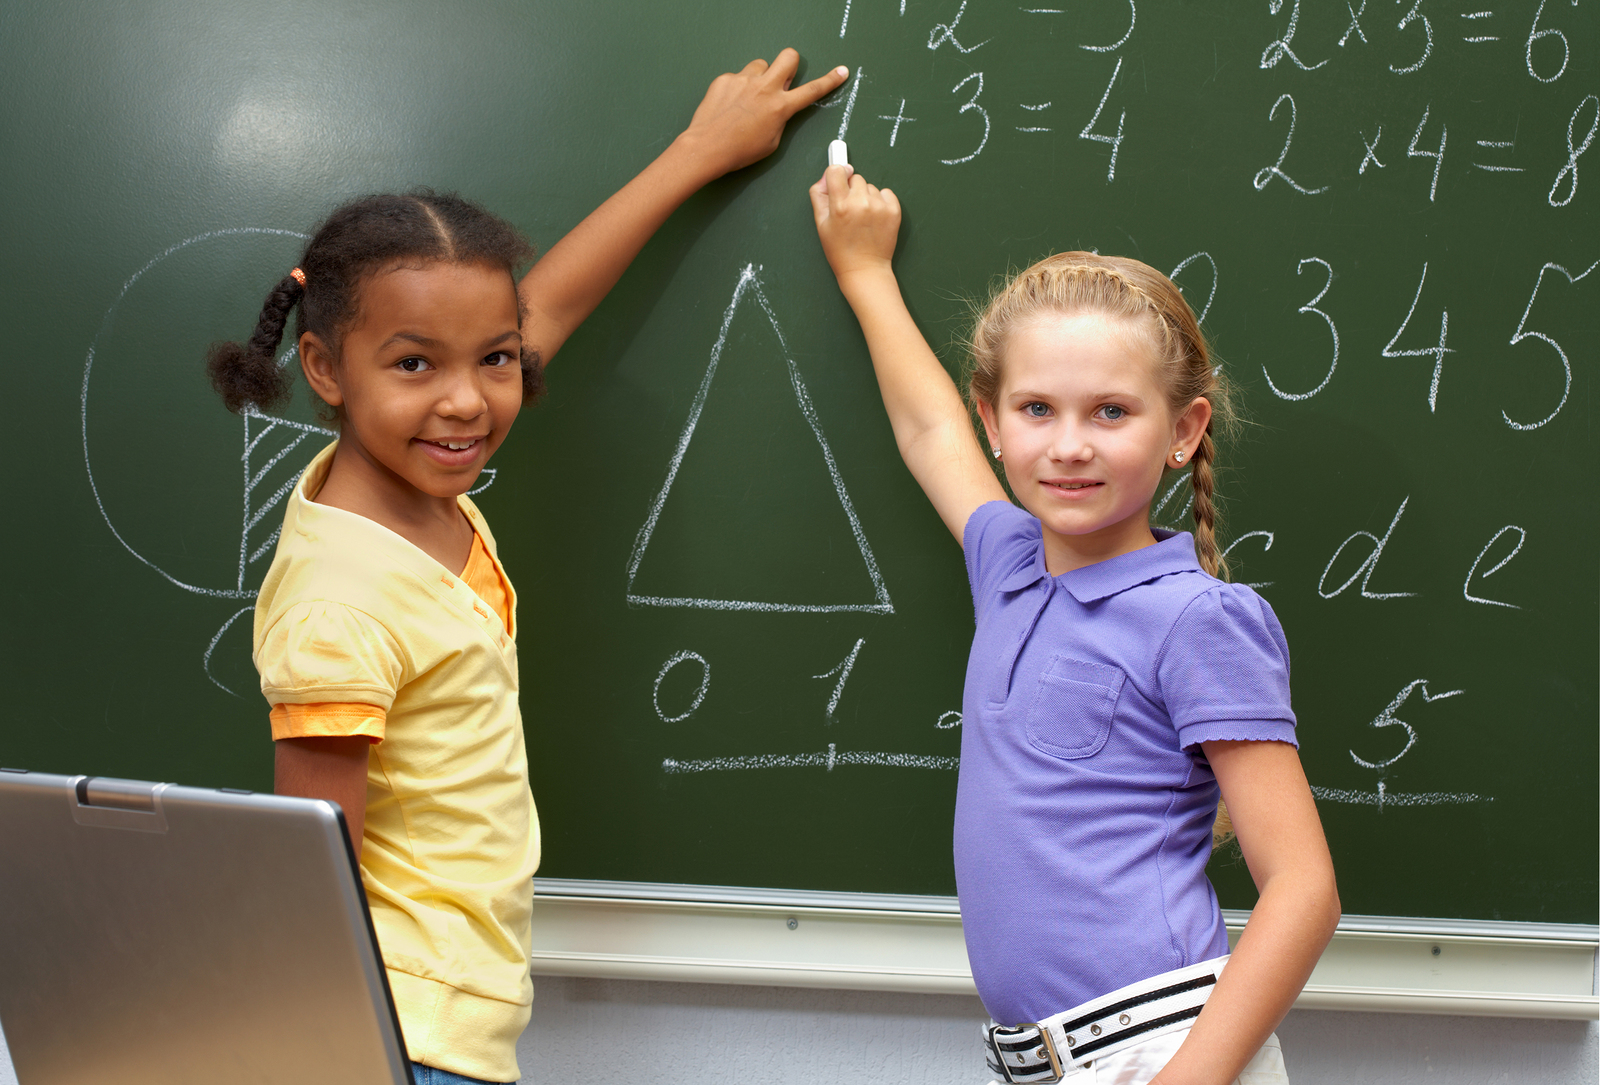 Combining movement with learning increases the chance that children can retain aspects of math.